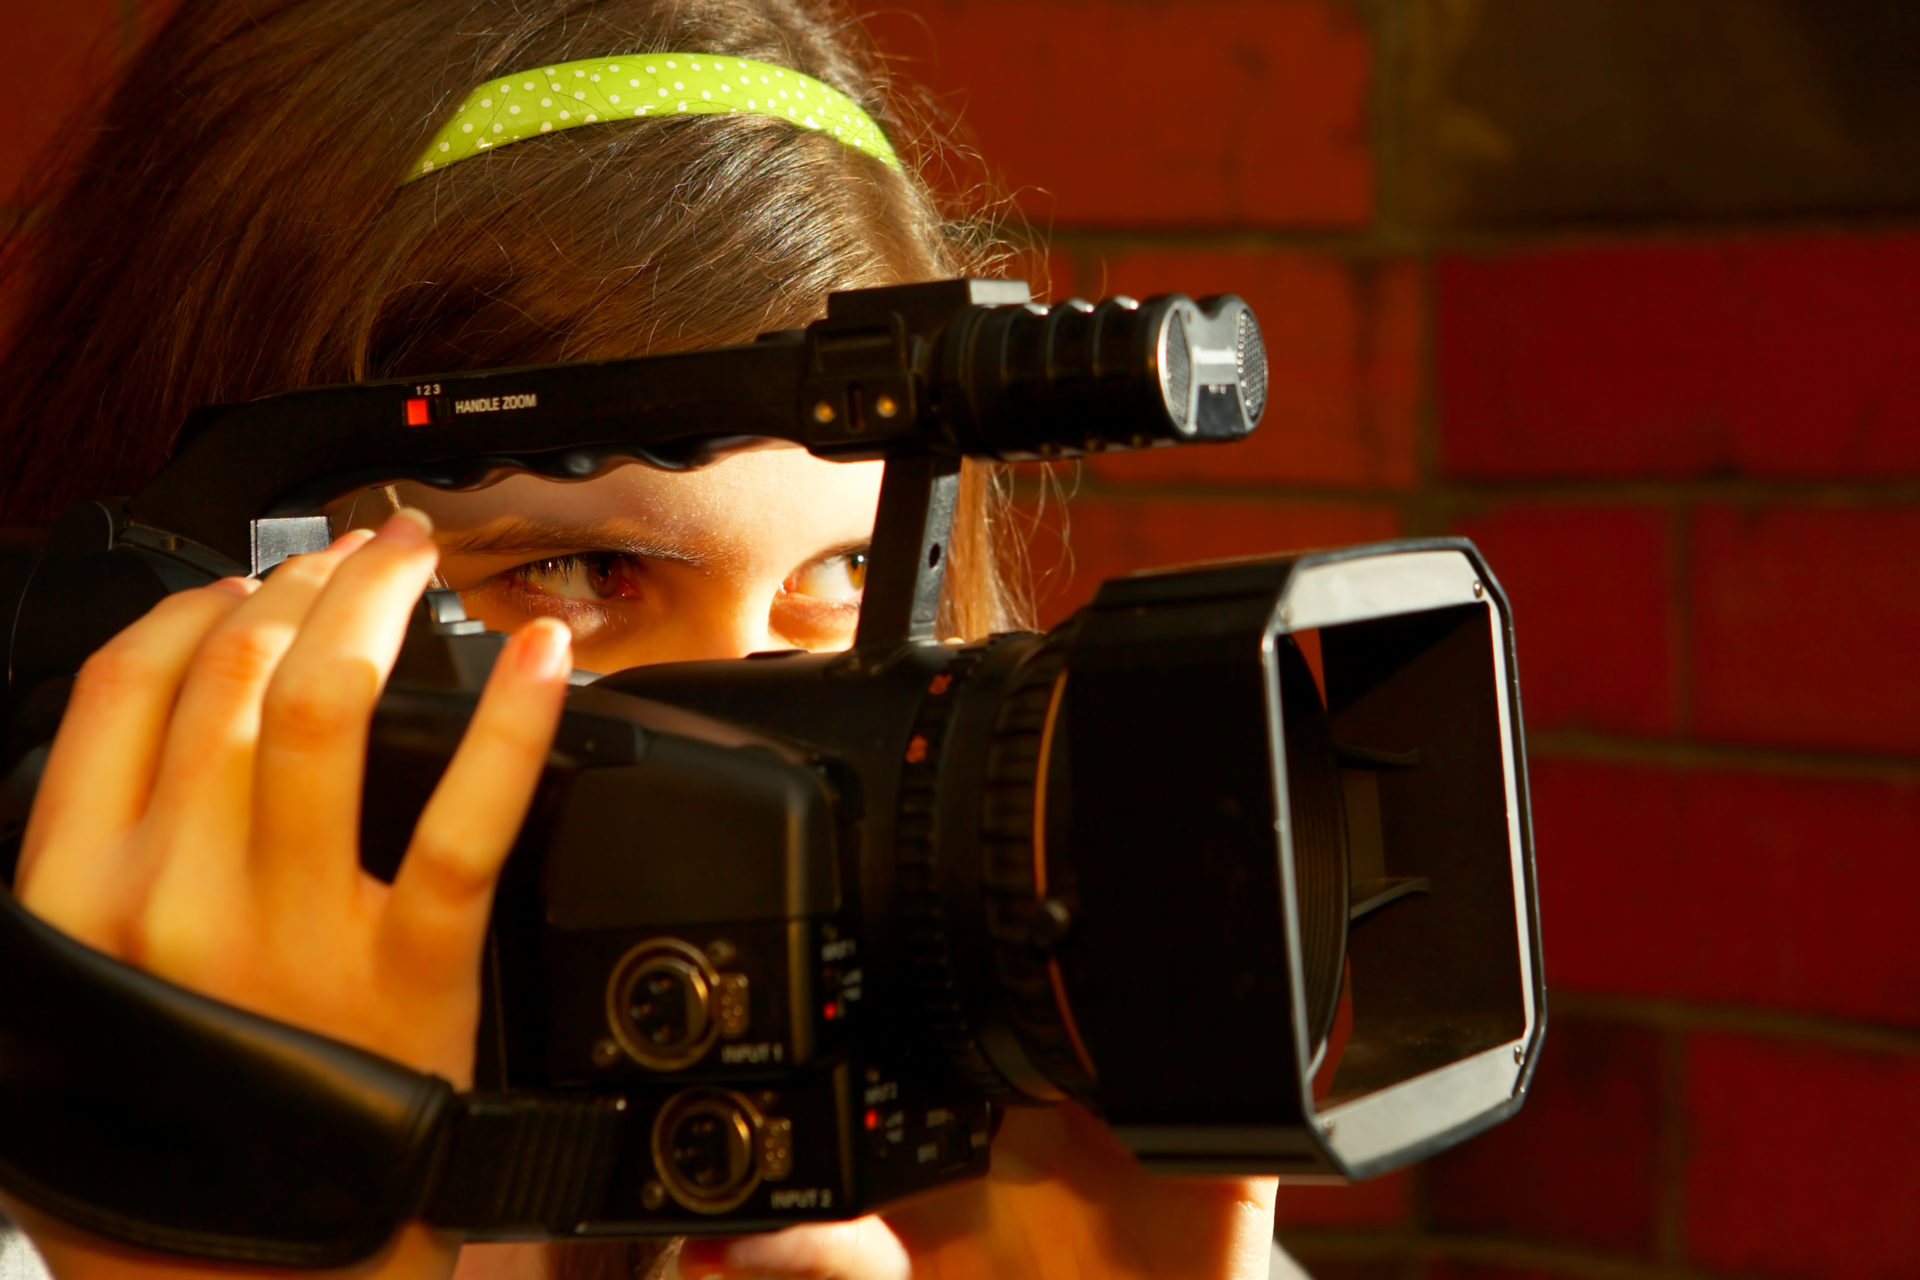 Girl Filming with camera